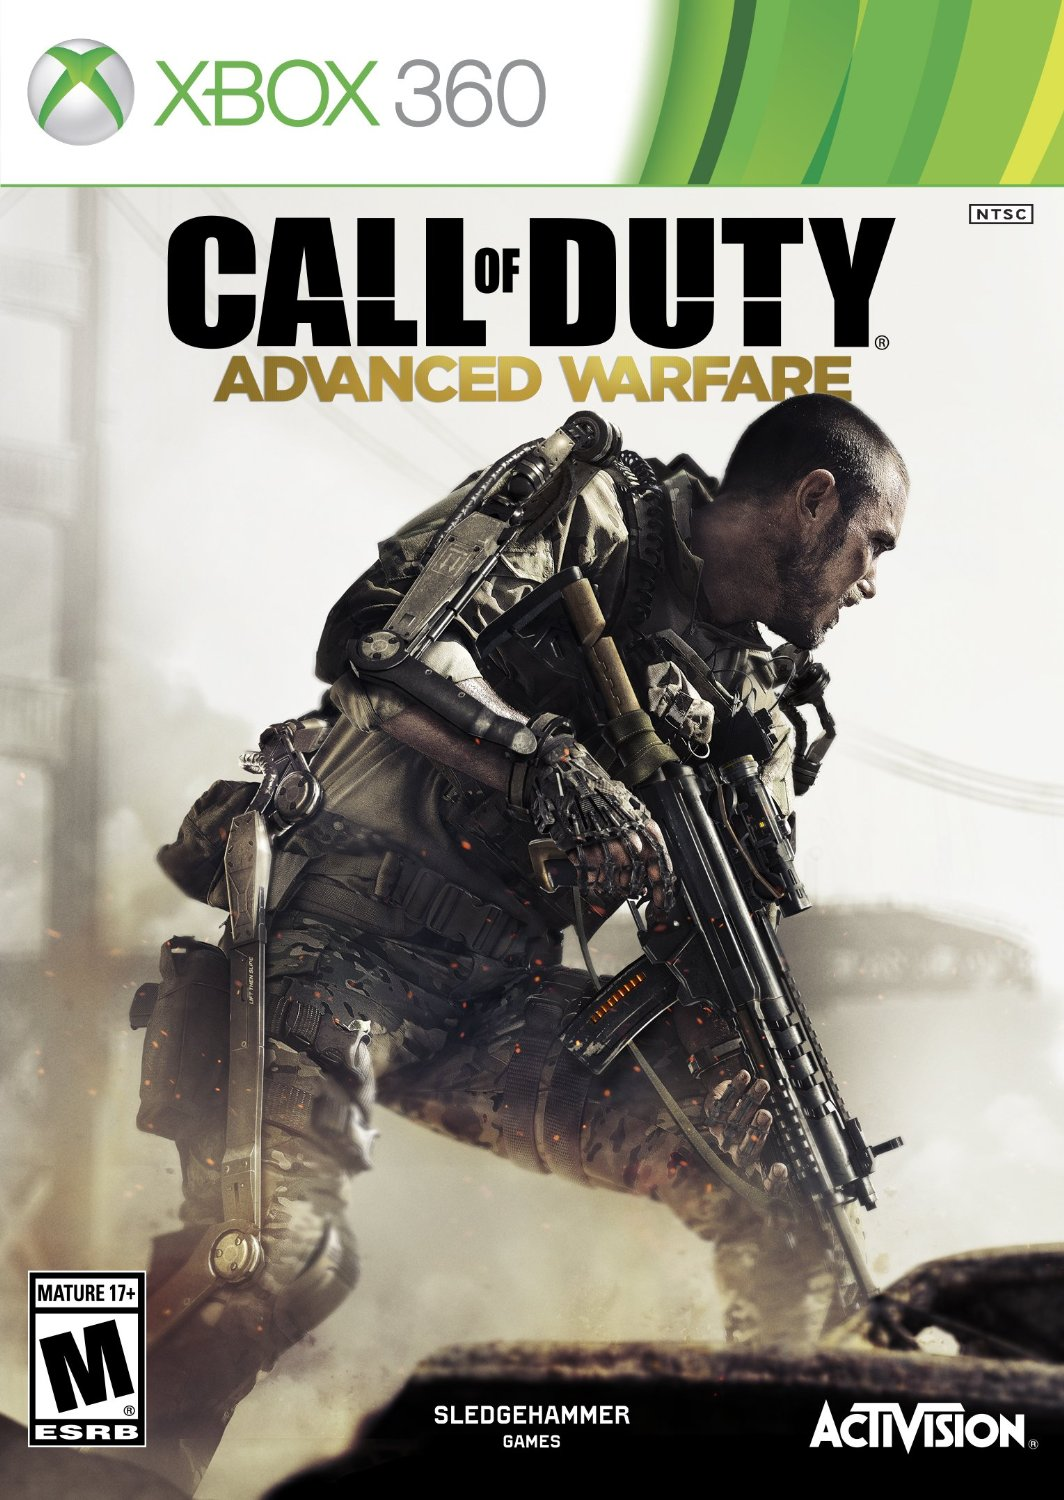 https://rozup.ir/up/narsis3/Pictures/Call-of-Duty-Advanced-Warfare-xbox360-cover-large.jpg